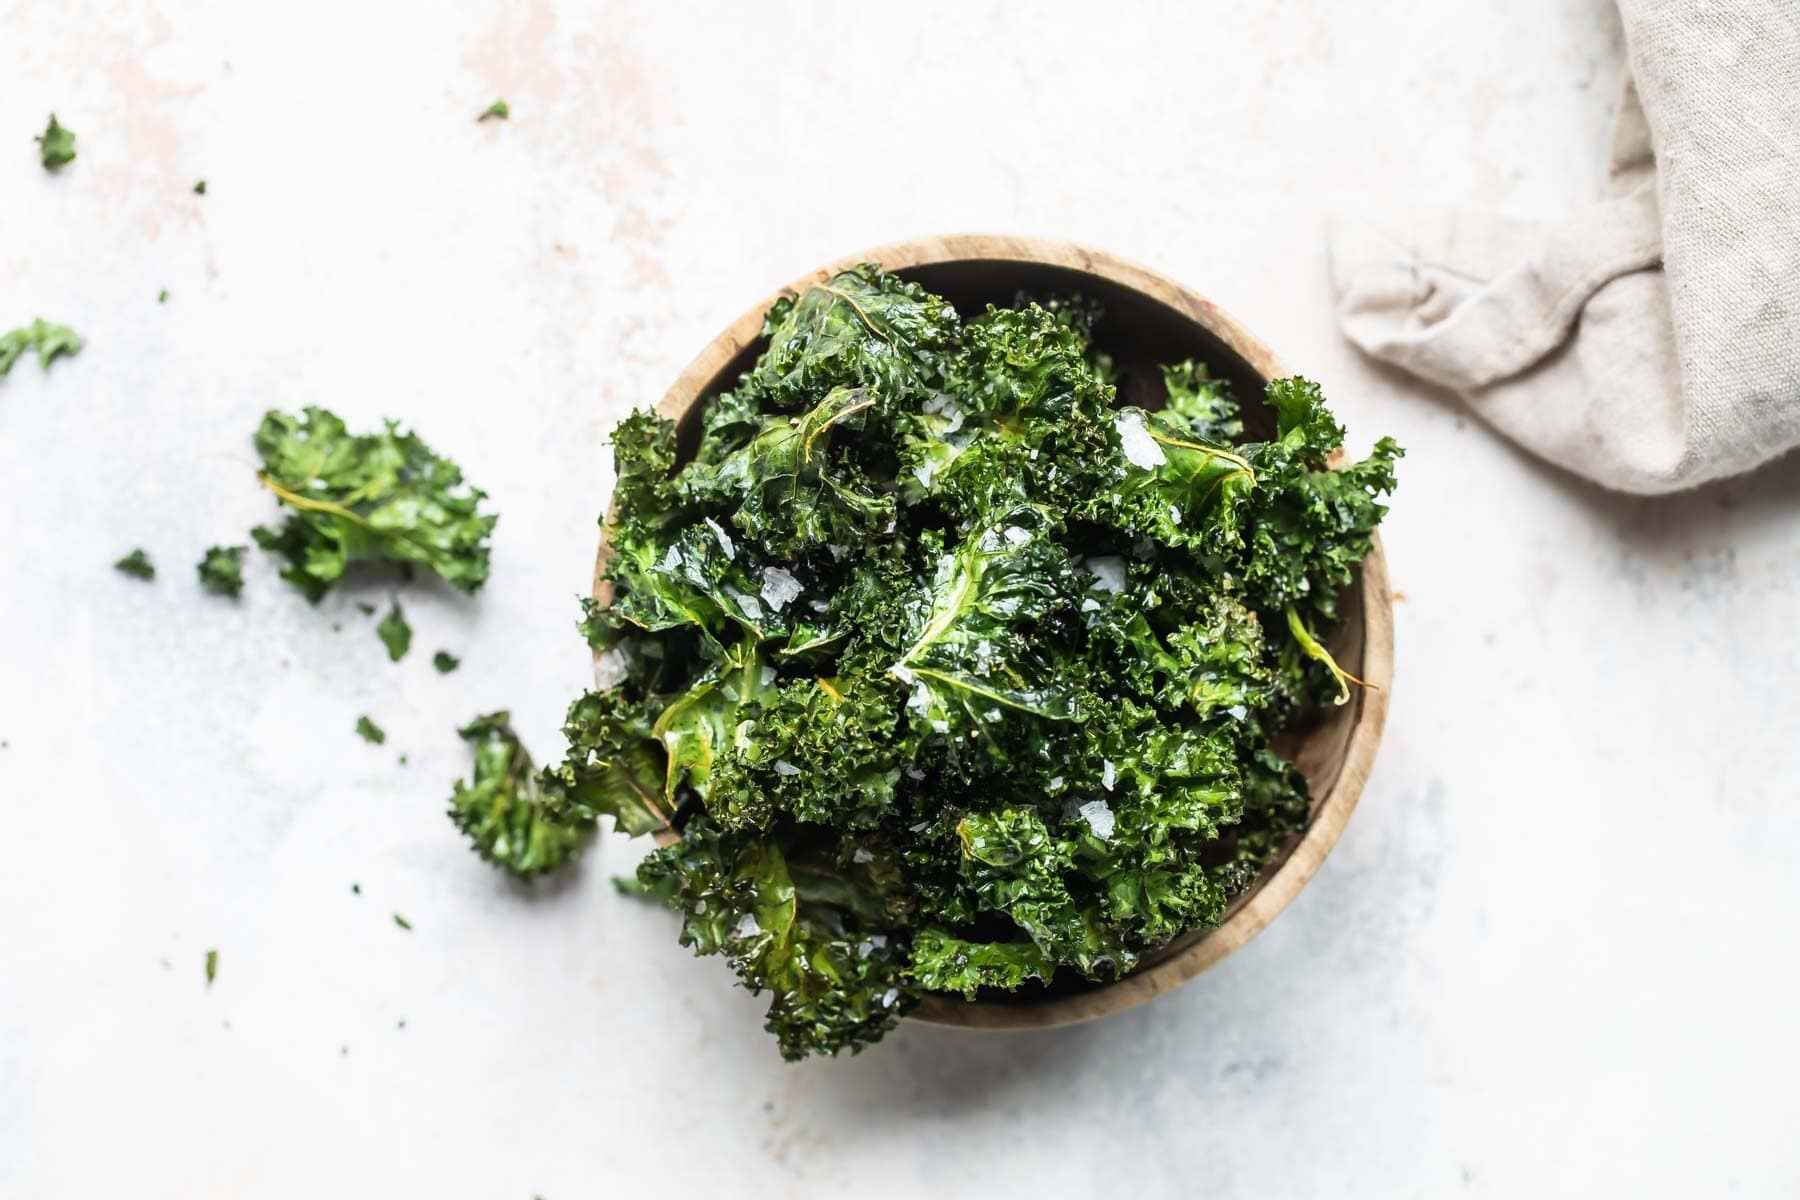 A bowl of baked kale chips.